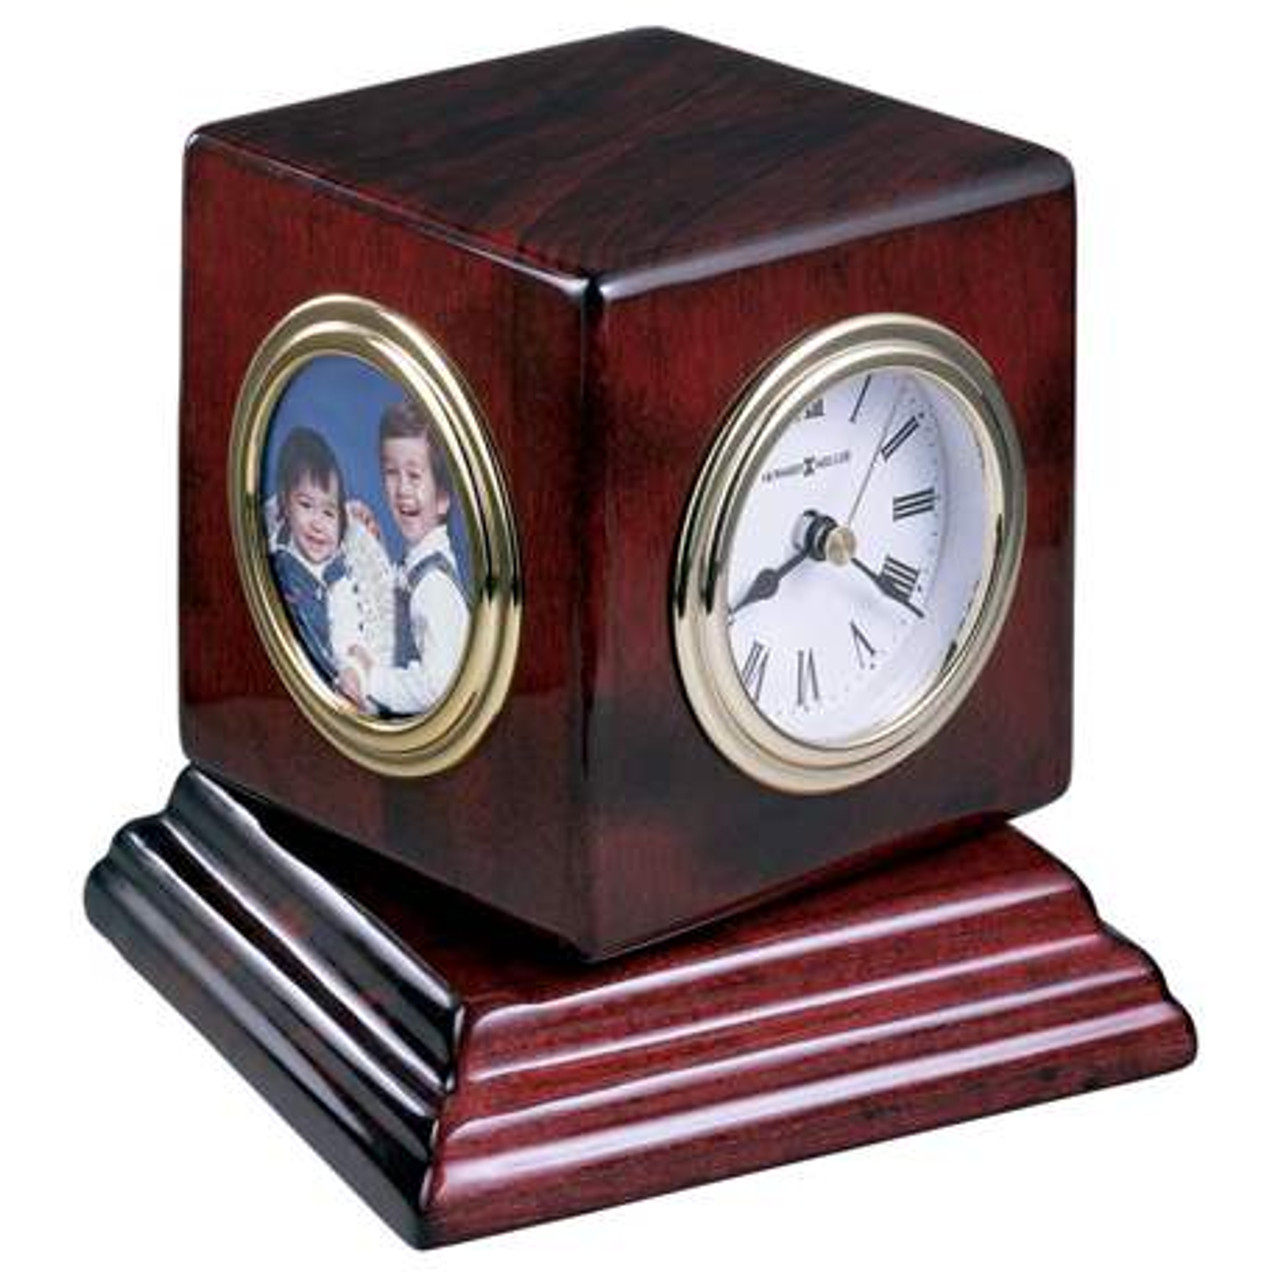 Award Clock with hygrometer, thermometer, and photo frame